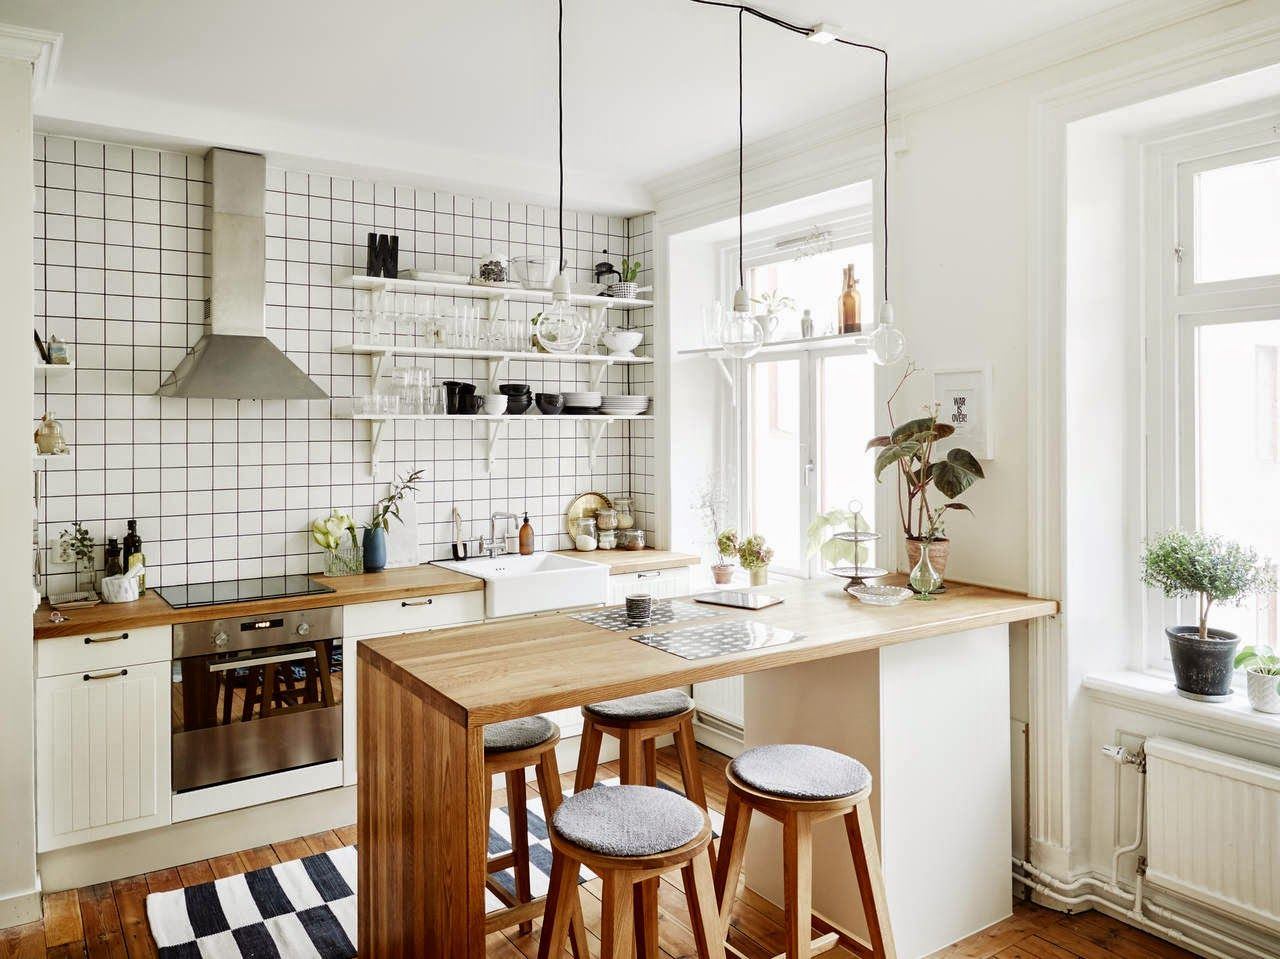 Pin by margottin claire on deco pinterest kitchens interiors